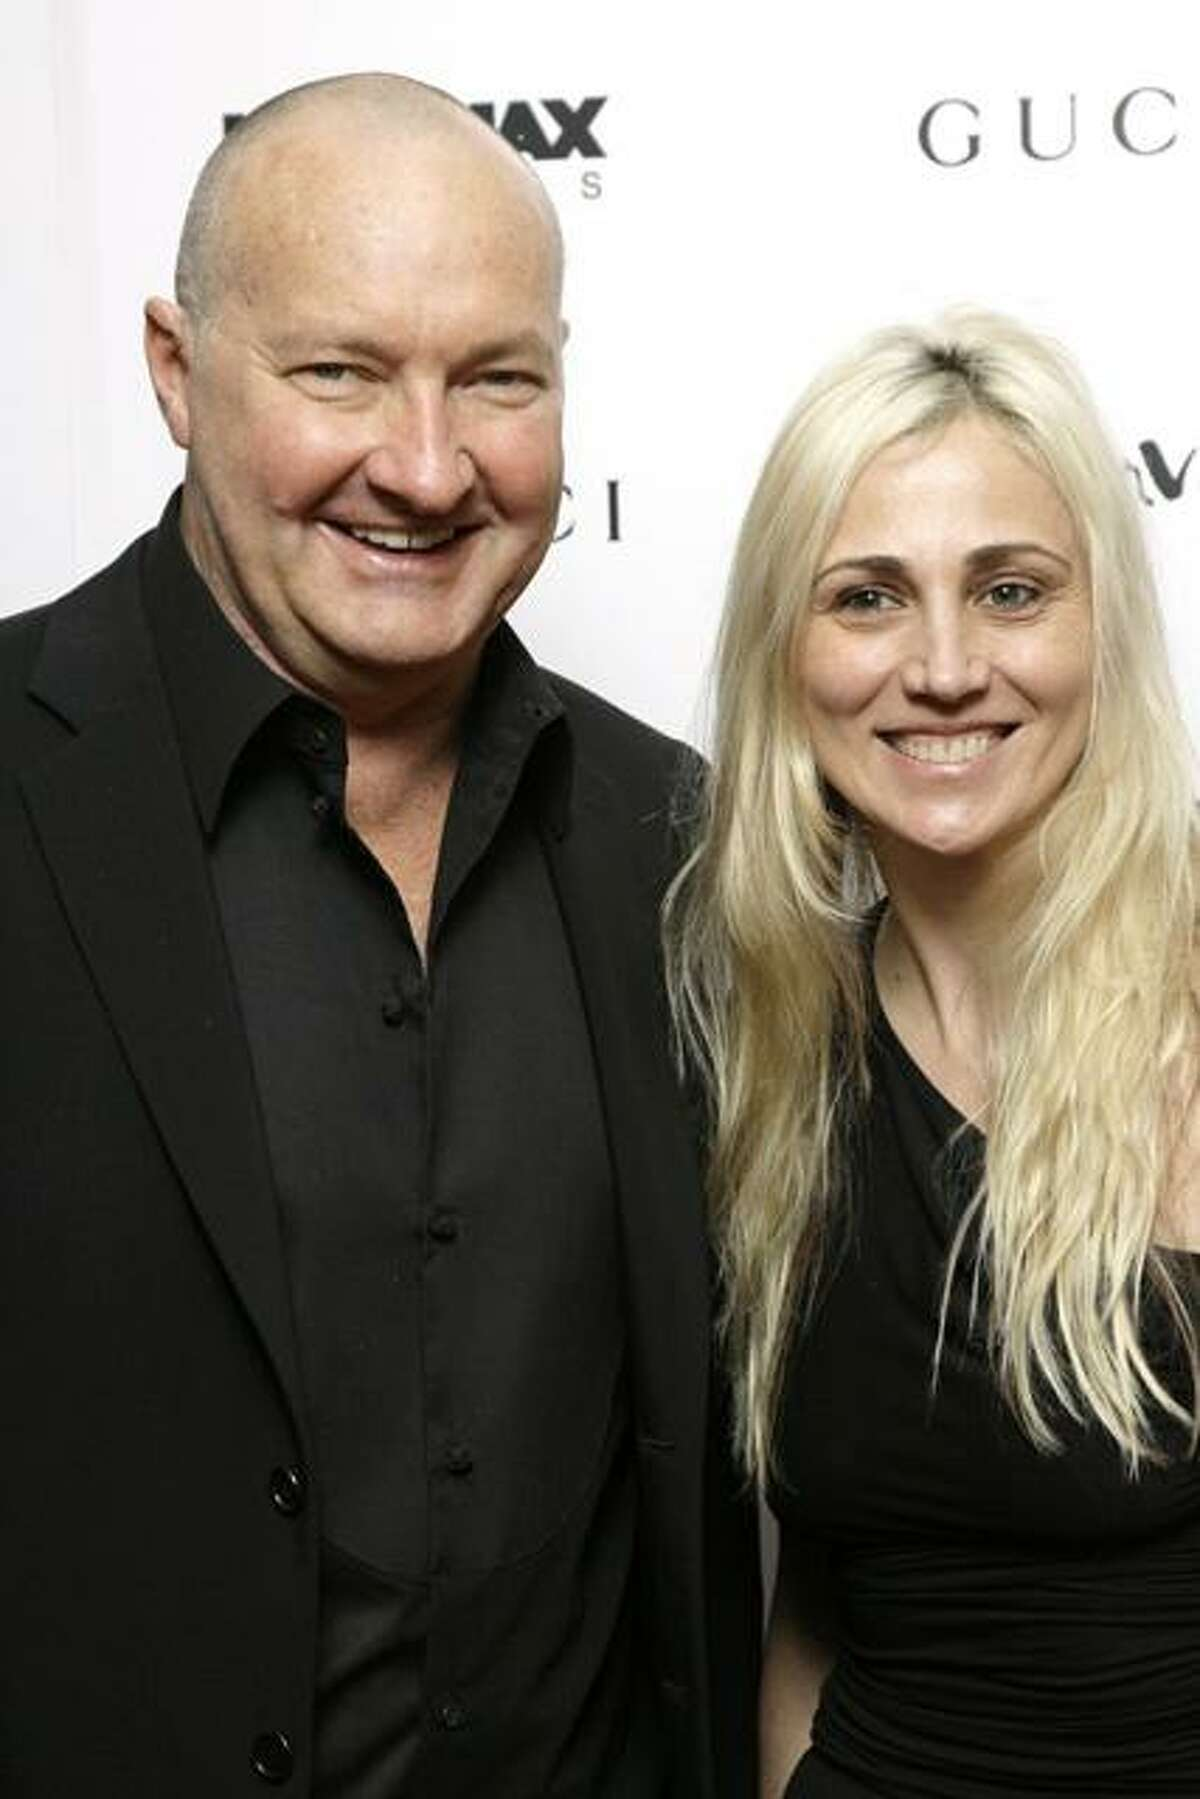 This Nov. 14, 2007, file photo shows actor Randy Quaid and his wife, Evi, arrive to a premiere in New York.